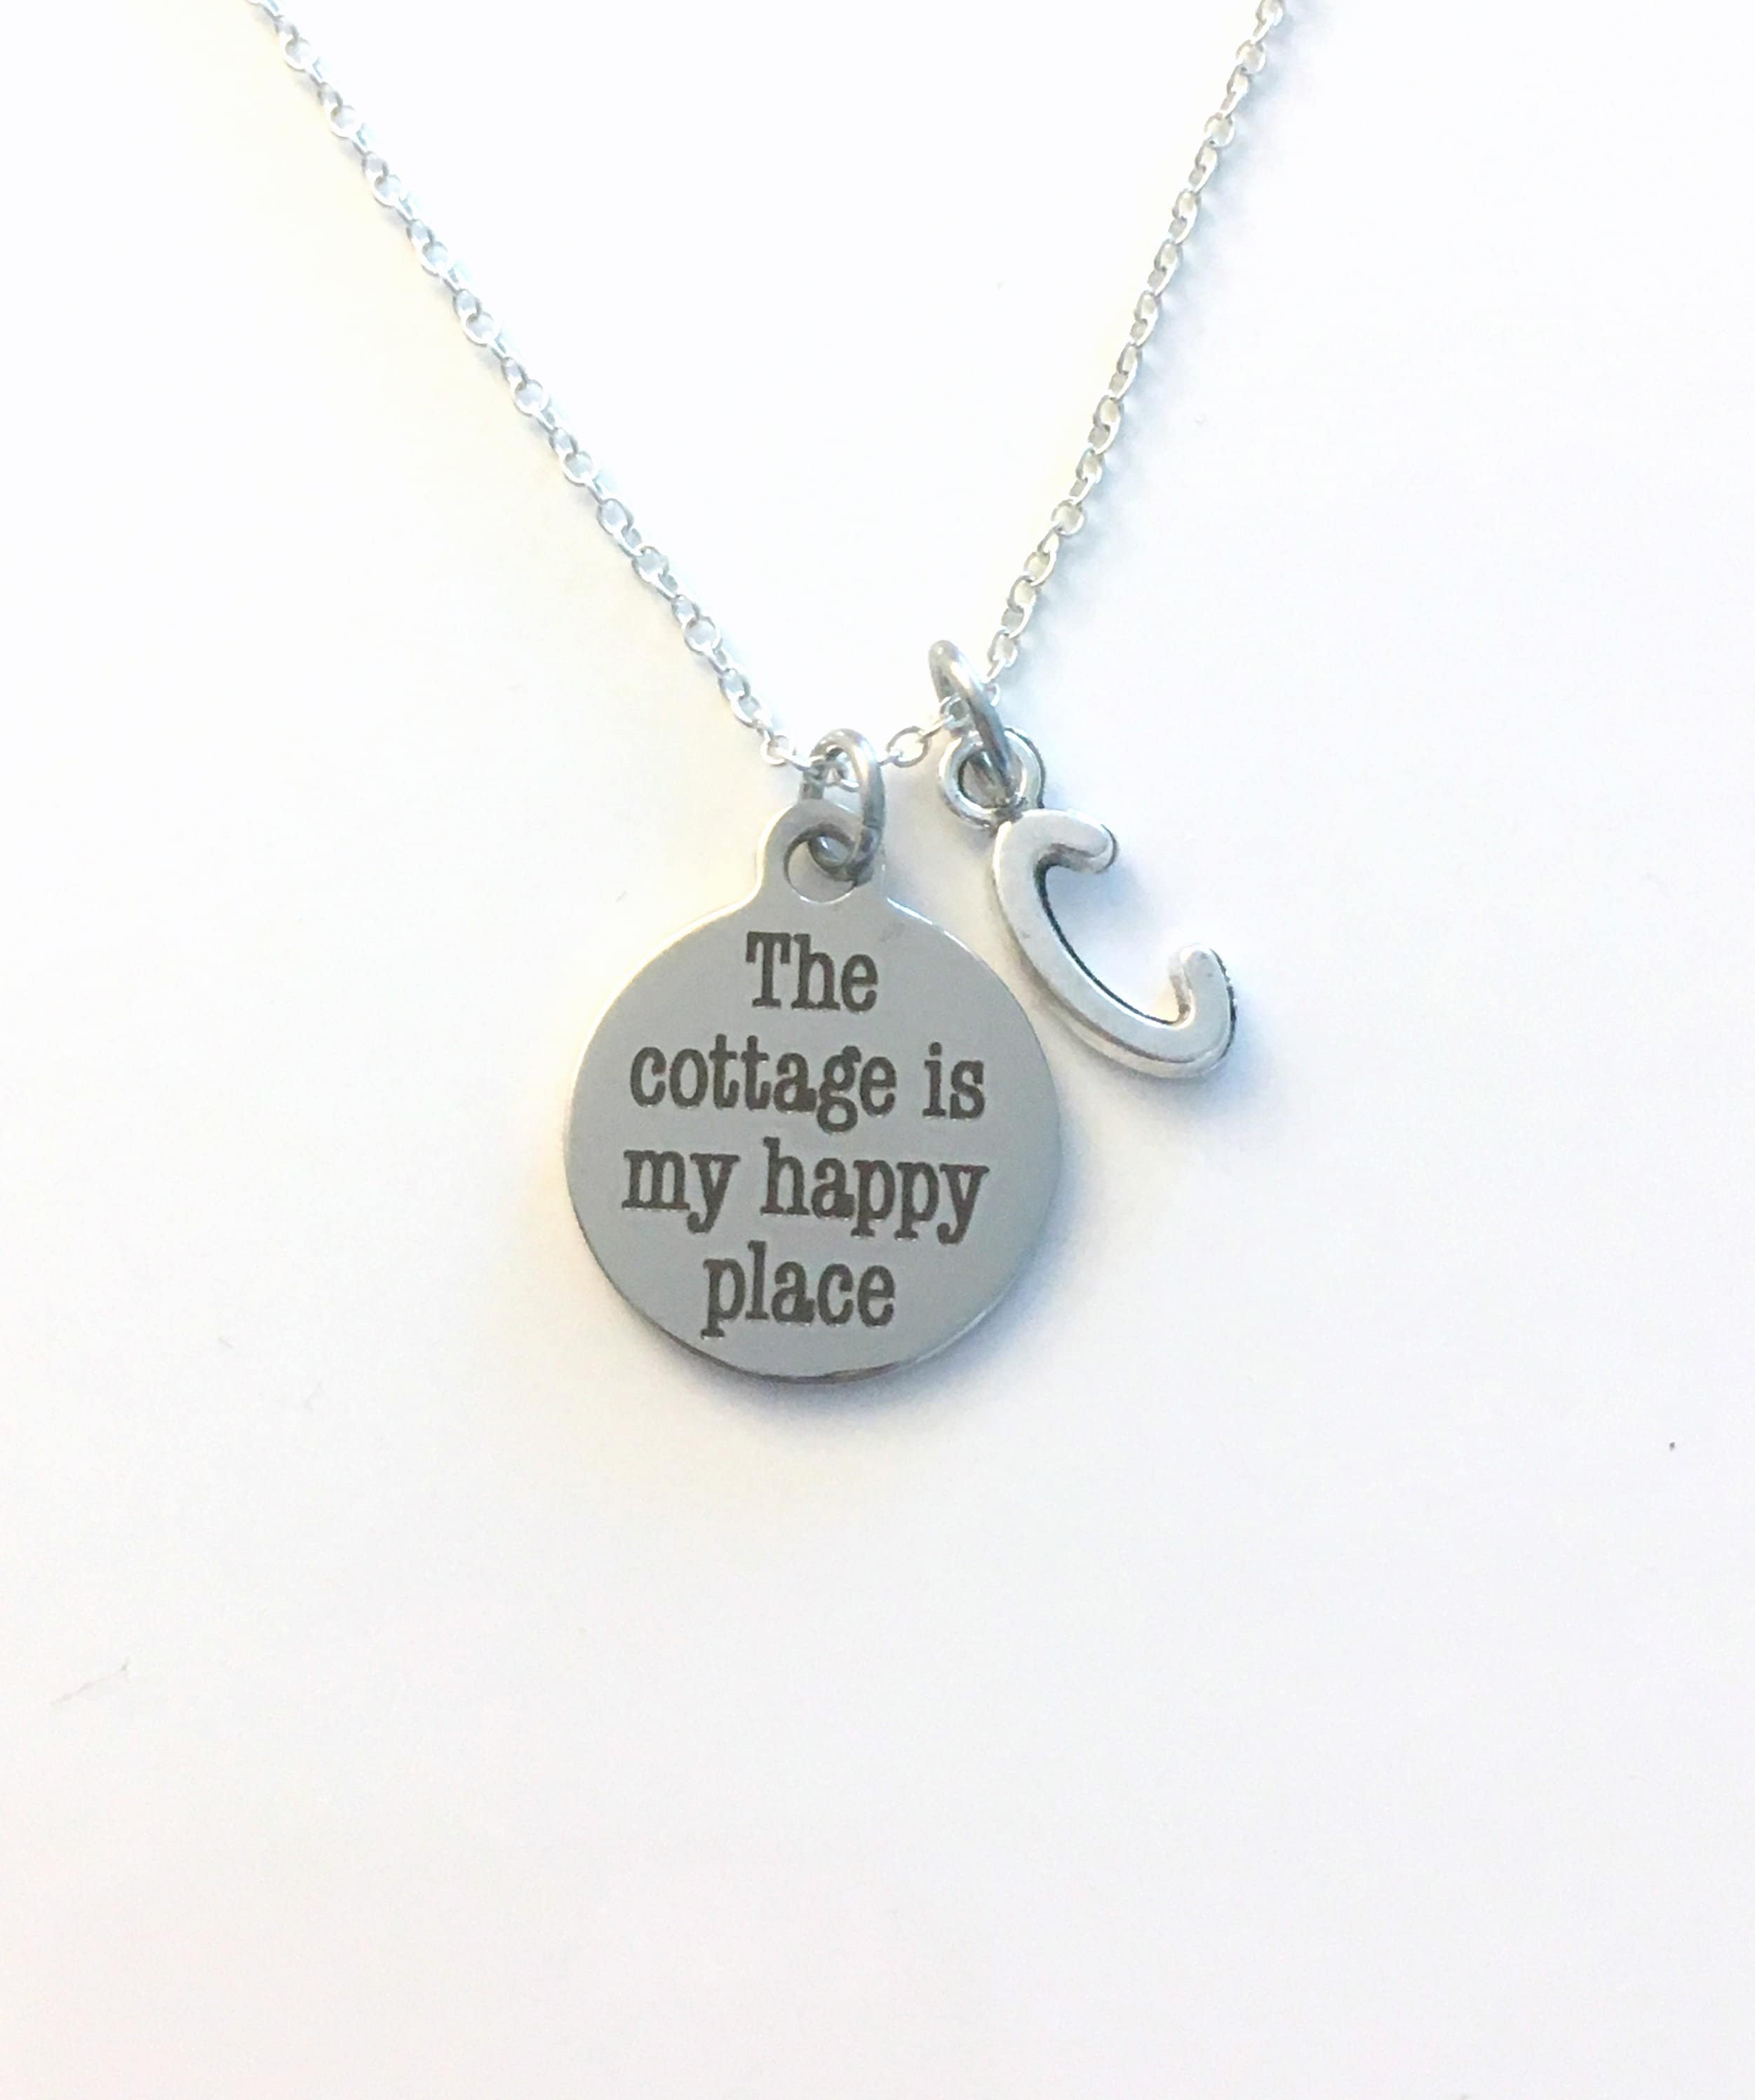 The Cottage Is My Happy Place Necklace Retirement Jewelry Gift For